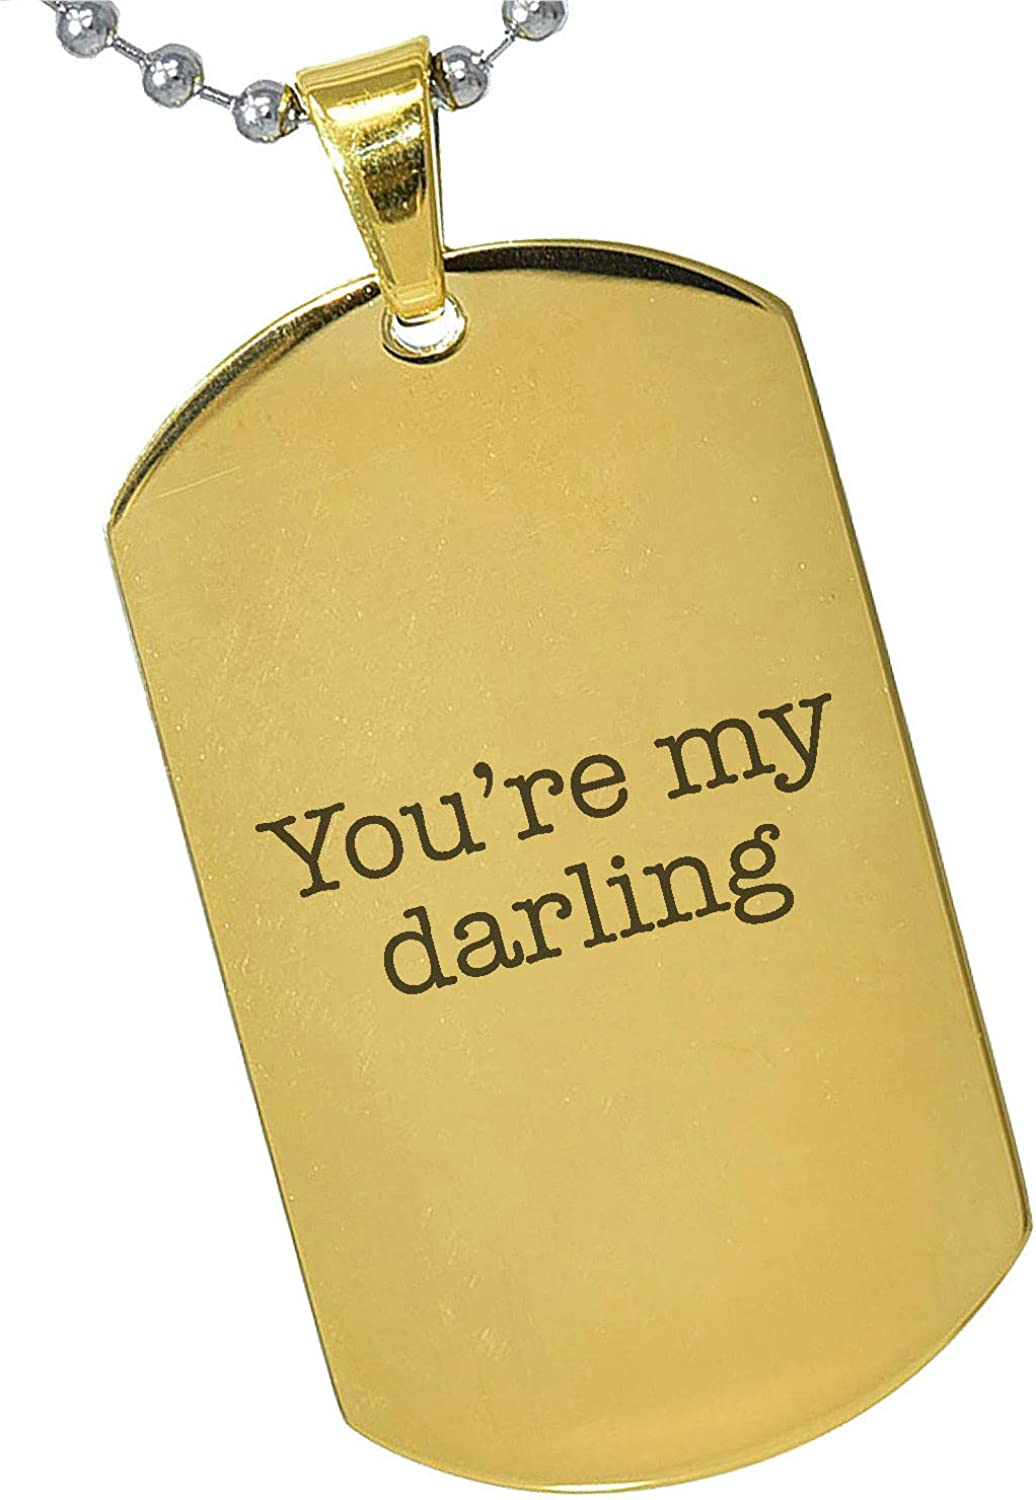 Tungsten King Stainless Steel Silver Gold Black Rose Gold Personalized Gift Darling Quote Special Message Photo Engraving Customizable Pendant Dog Tags 24 Ball Chains